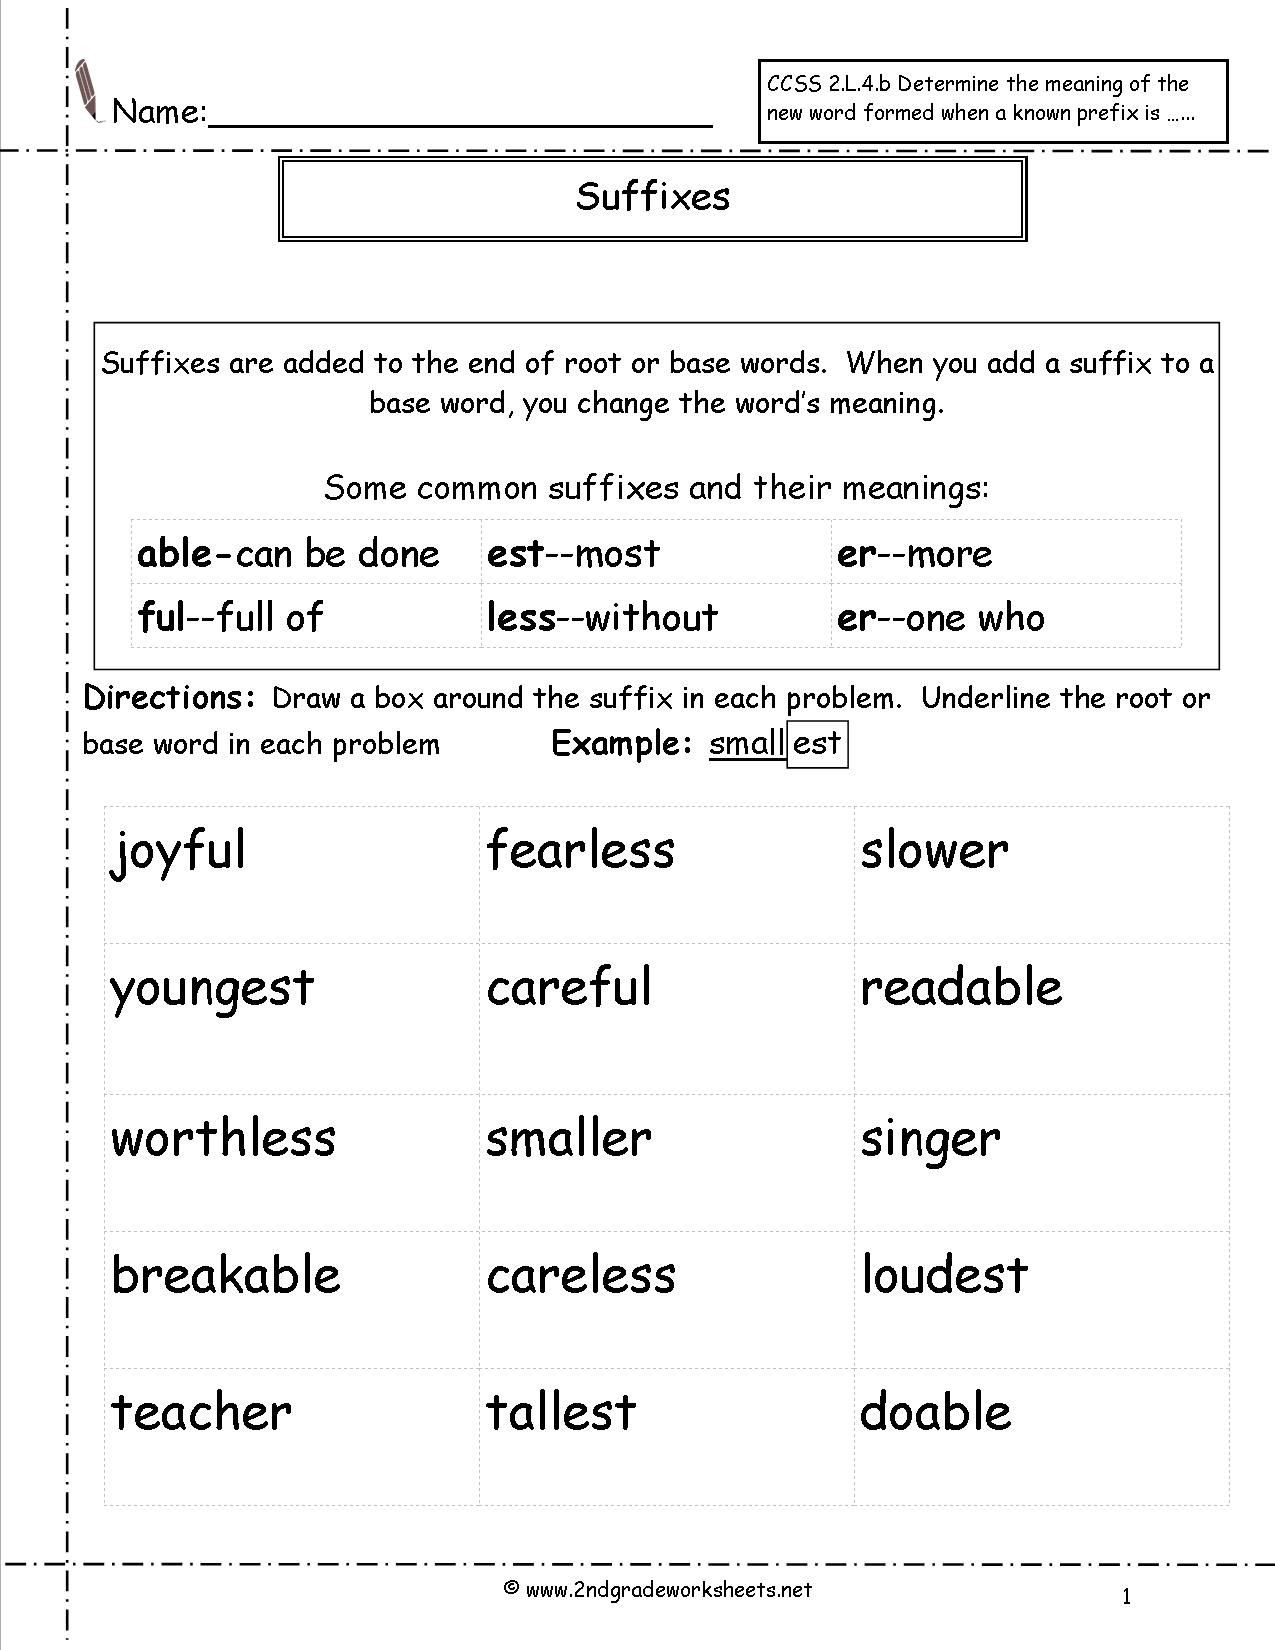 Suffixes Worksheets 4th Grade 41 Innovative Prefix Worksheets for You